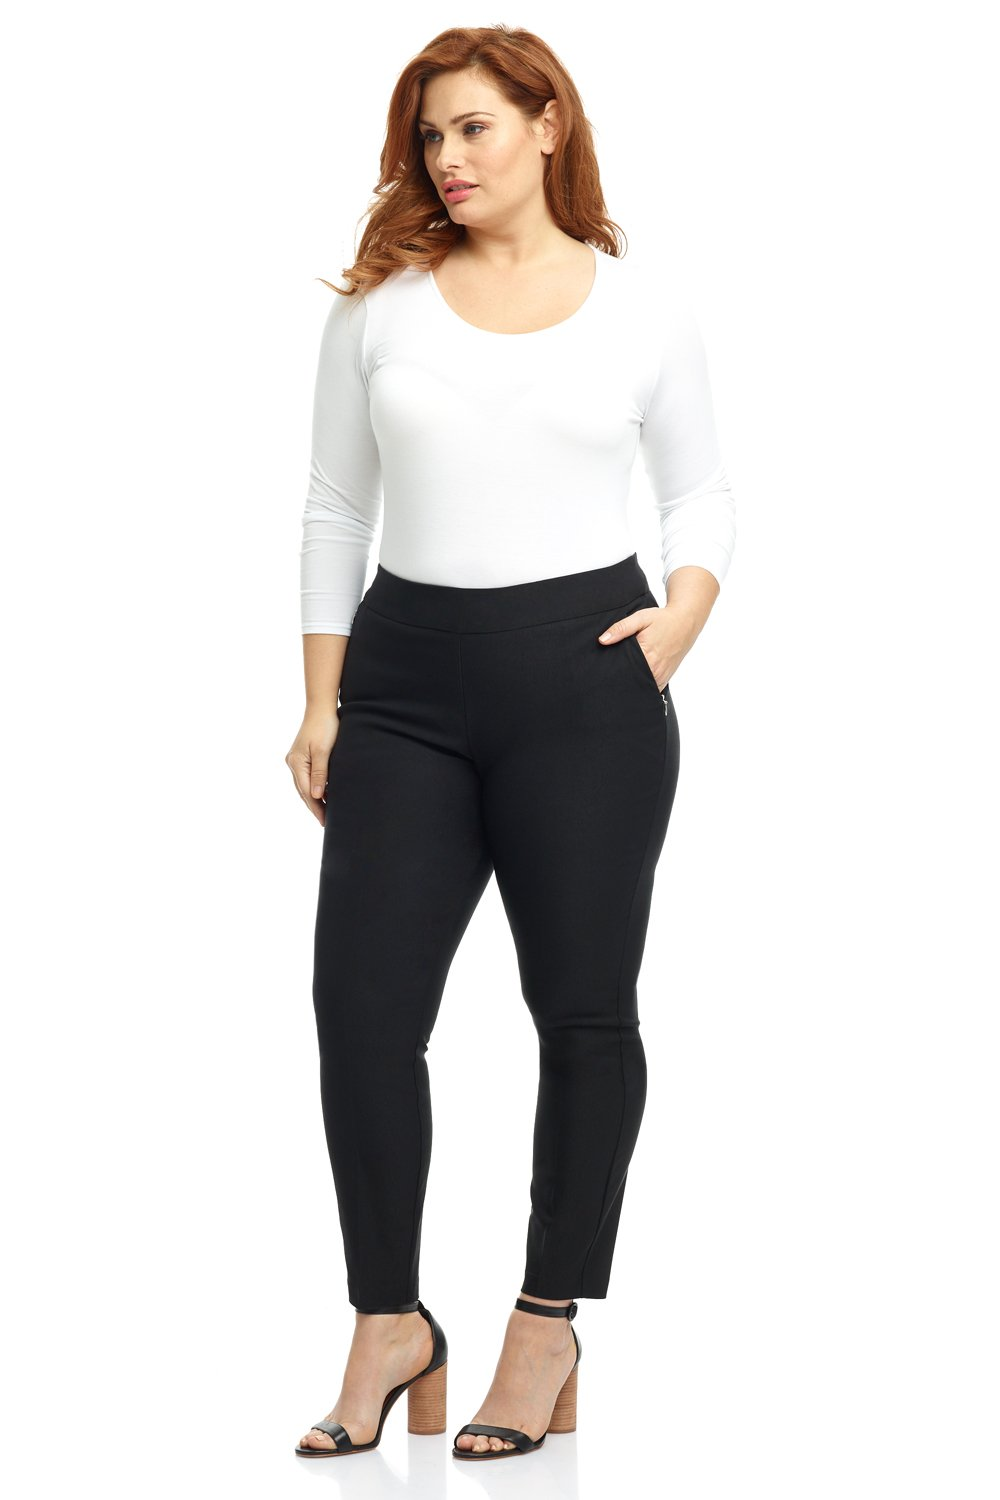 Rekucci Curvy Woman Ease in to Comfort Fit Modern Skinny Plus Size Pant w/Tummy Control (18WSHORT,Black)